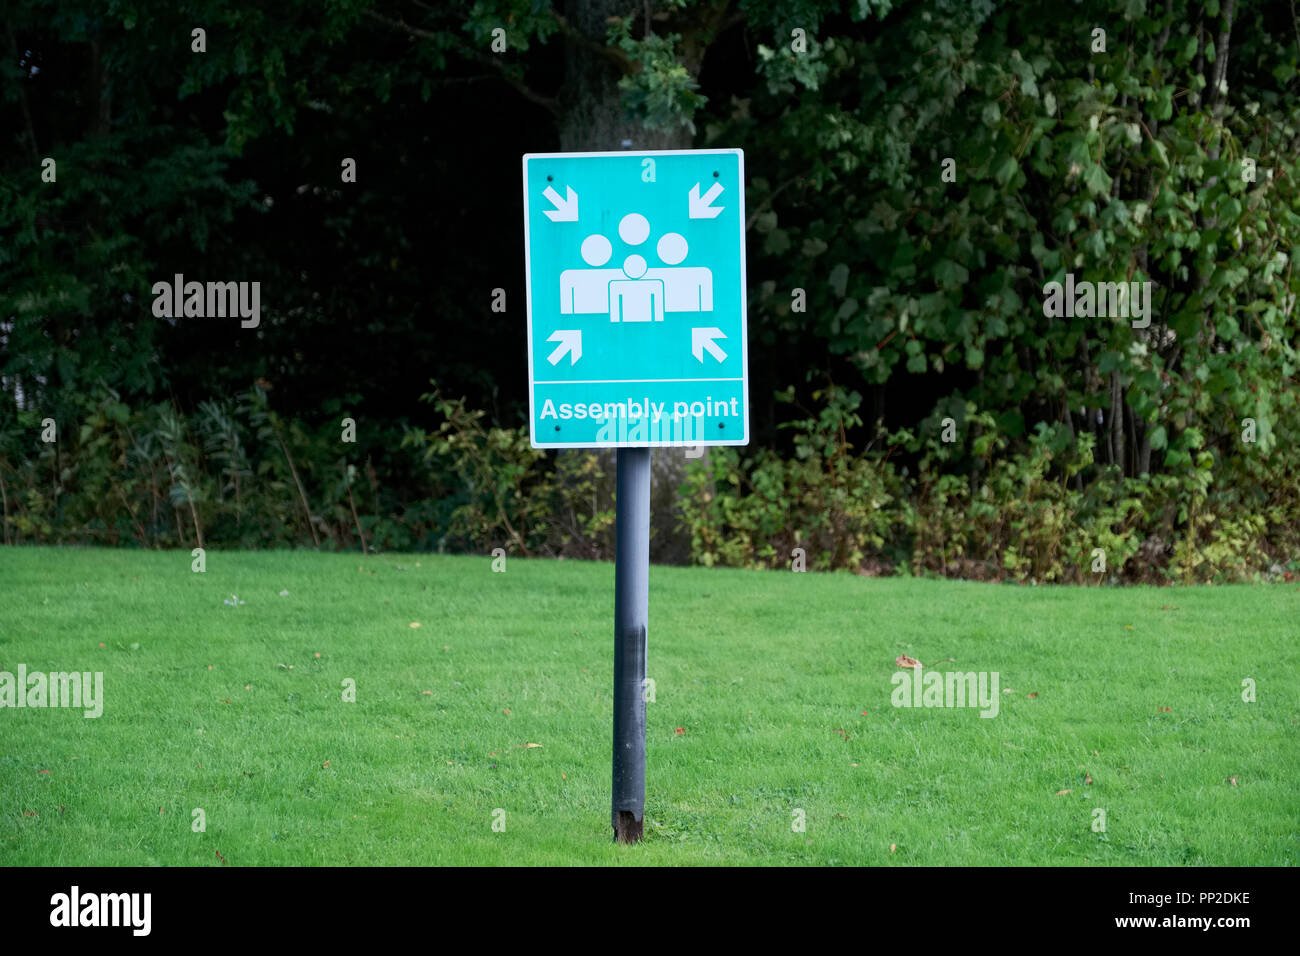 Fire assembly point sign at workplace car park - Stock Image